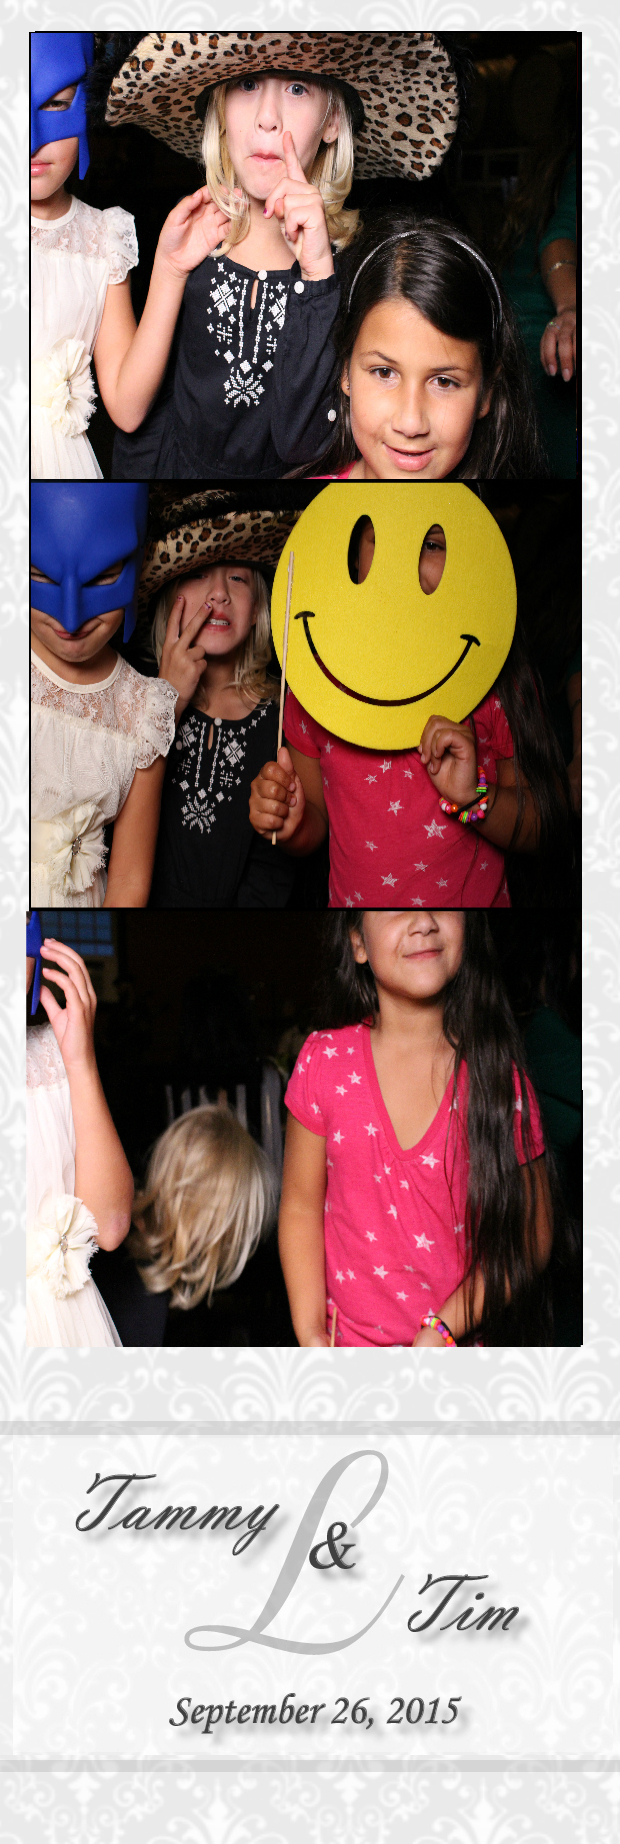 Guest House Events Photo Booth Strips T&T (2).jpg